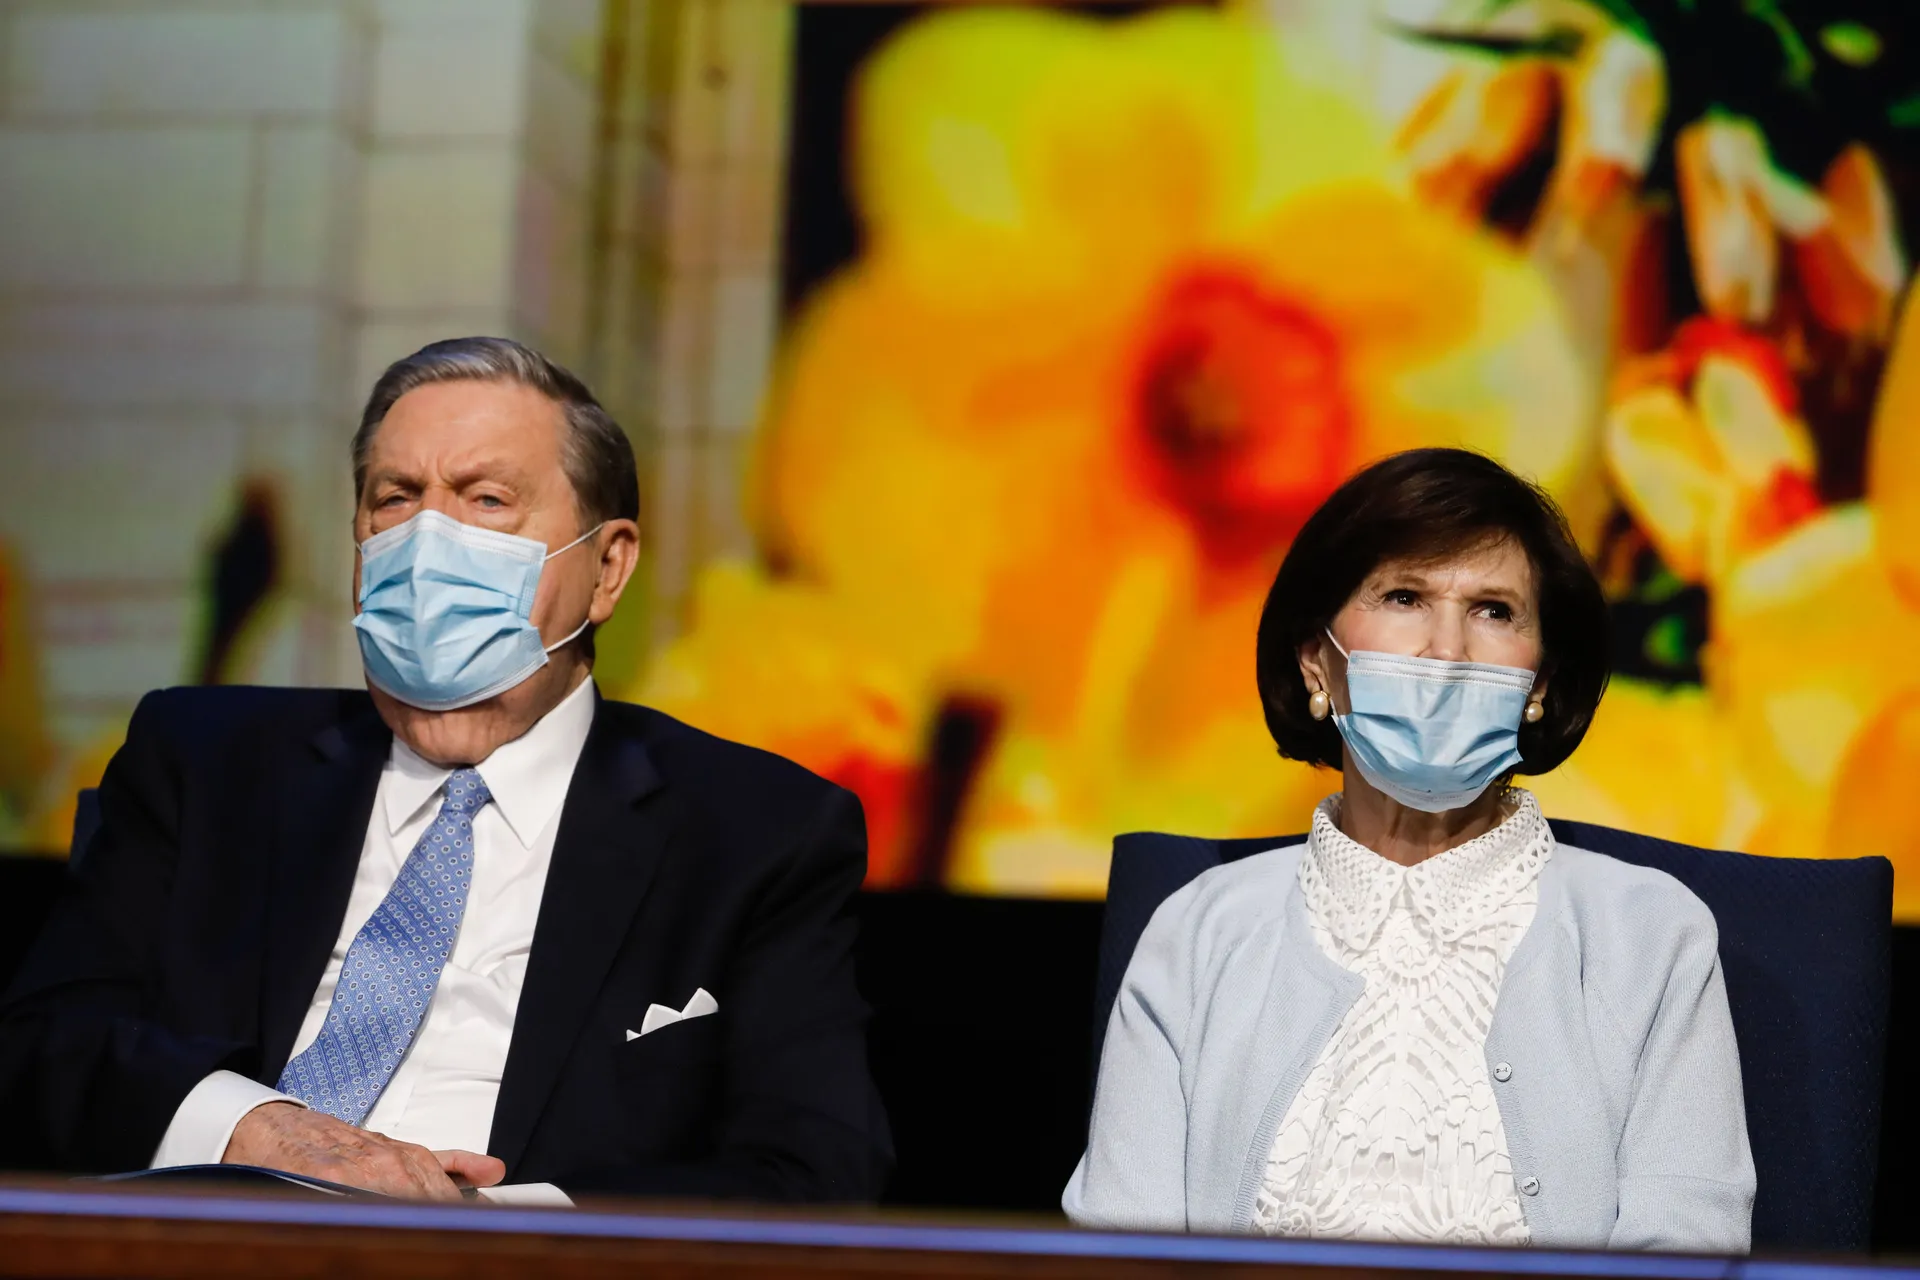 Elder Jeffrey R. Holland, of the Quorum of the Twelve Apostles of The Church of Jesus Christ of Latter-day Saints, and his wife, Sister Patricia Holland, wear masks while sitting on the stand at the BYU Annual University Conference, in Provo.